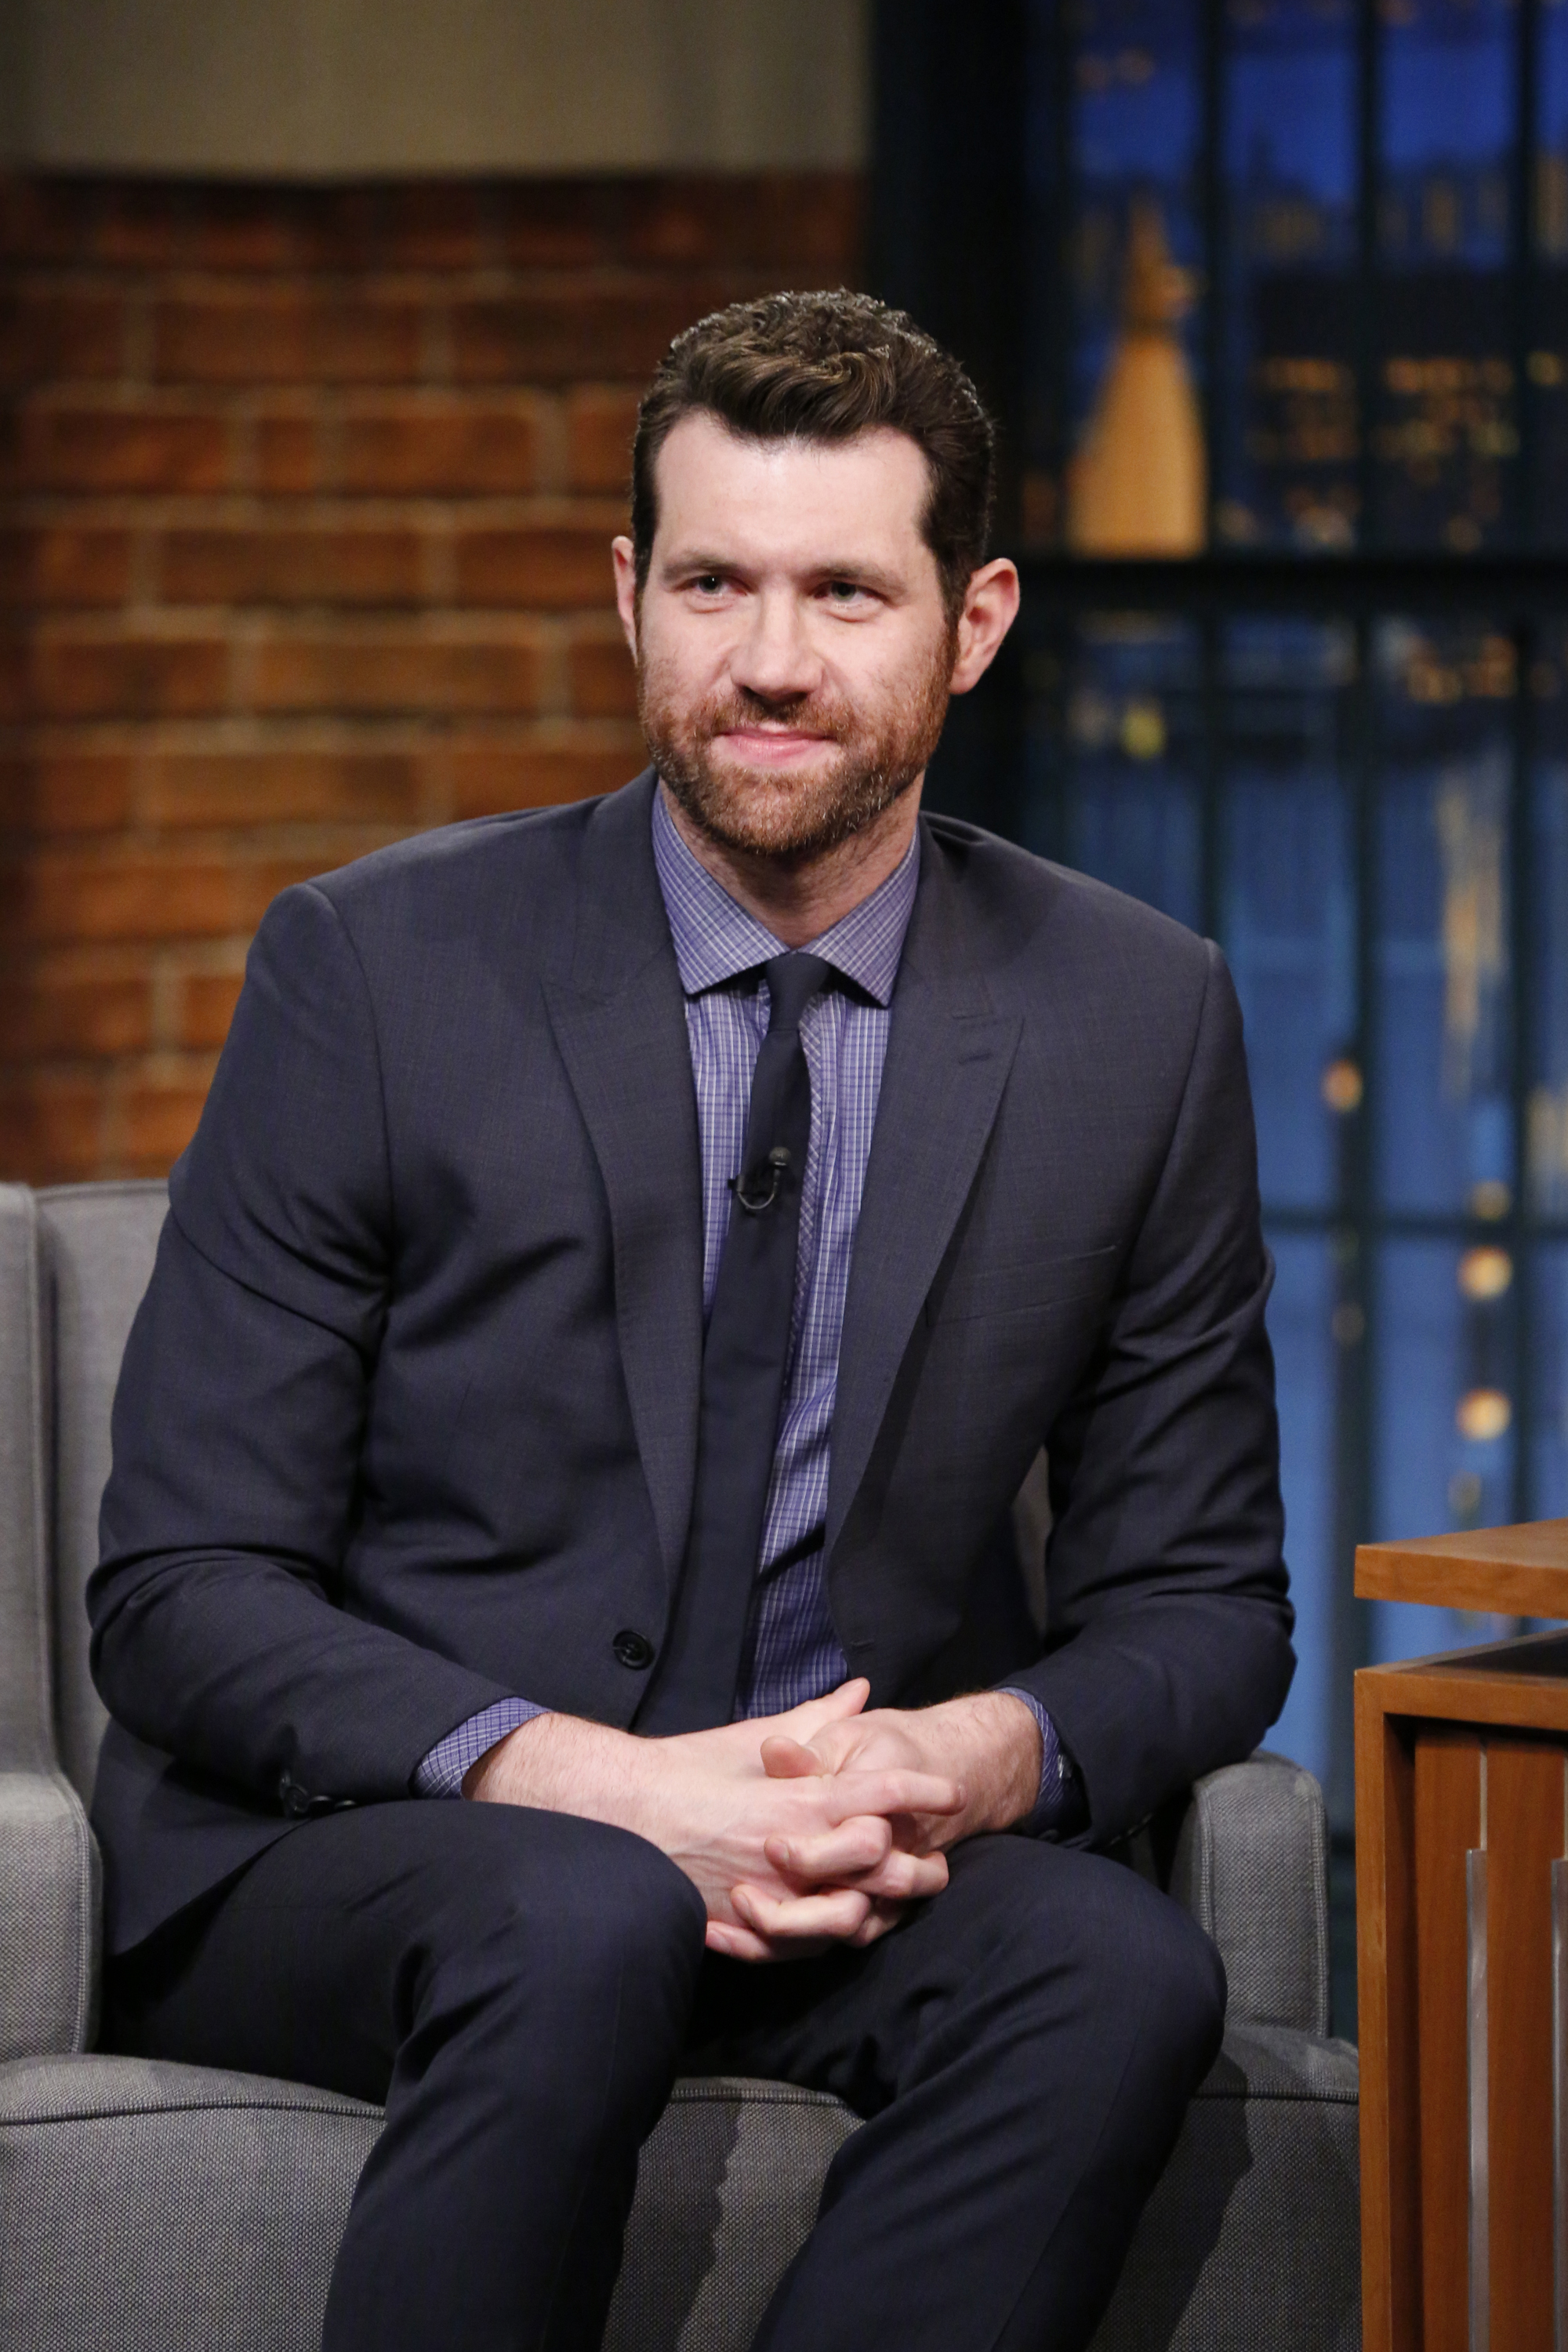 Billy Eichner during  Late Night with Seth Meyers  on June 20, 2016.